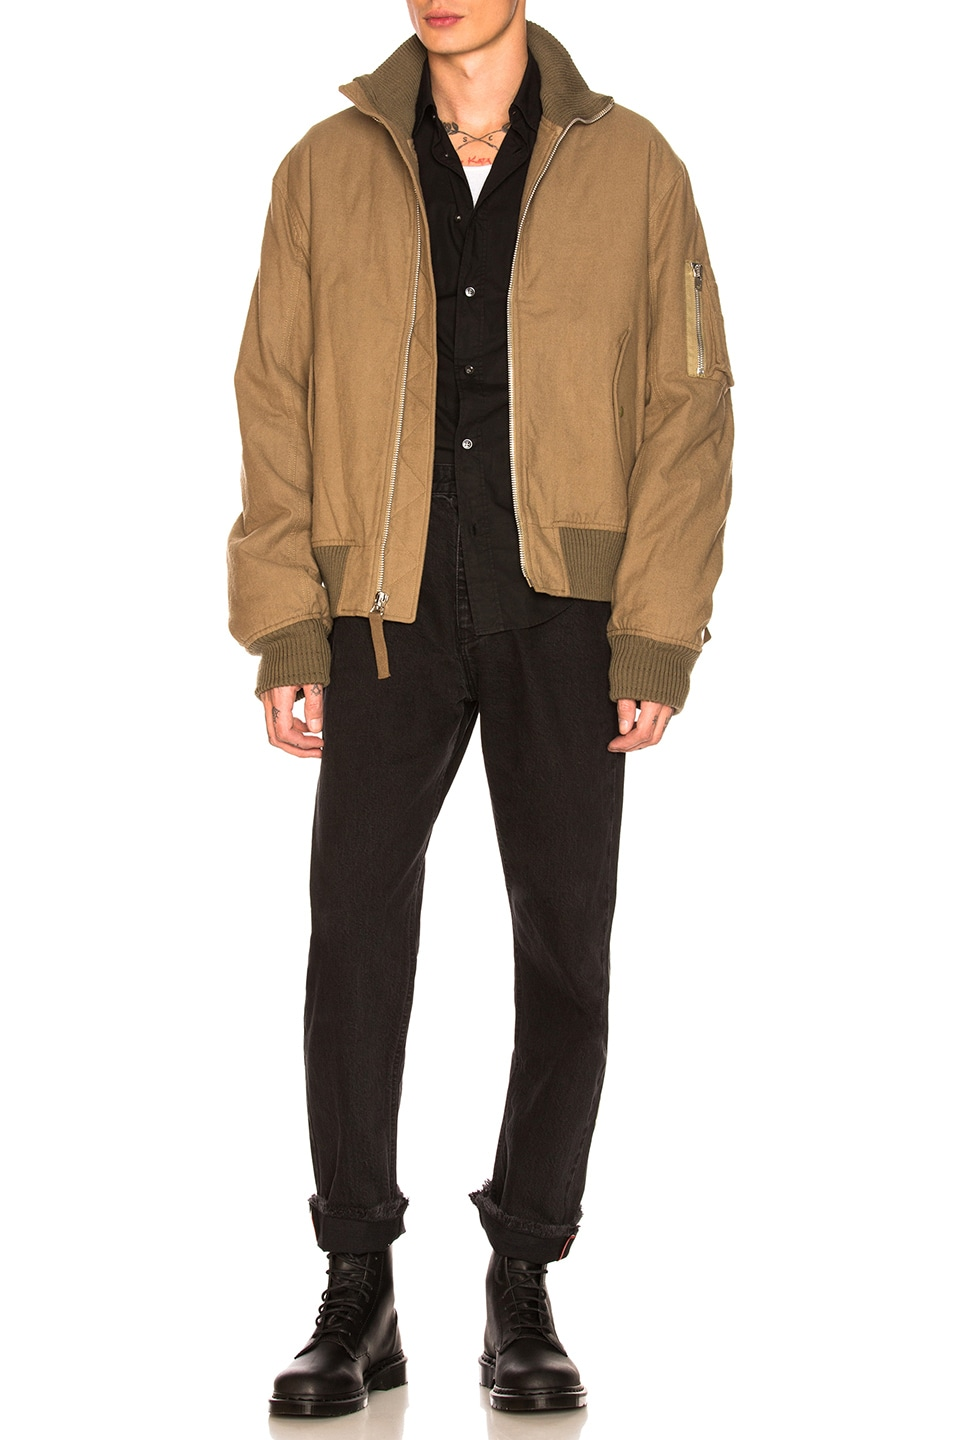 76db0965e8a3 Image 1 of Helmut Lang Re-Edition High Collar Bomber in Army Green